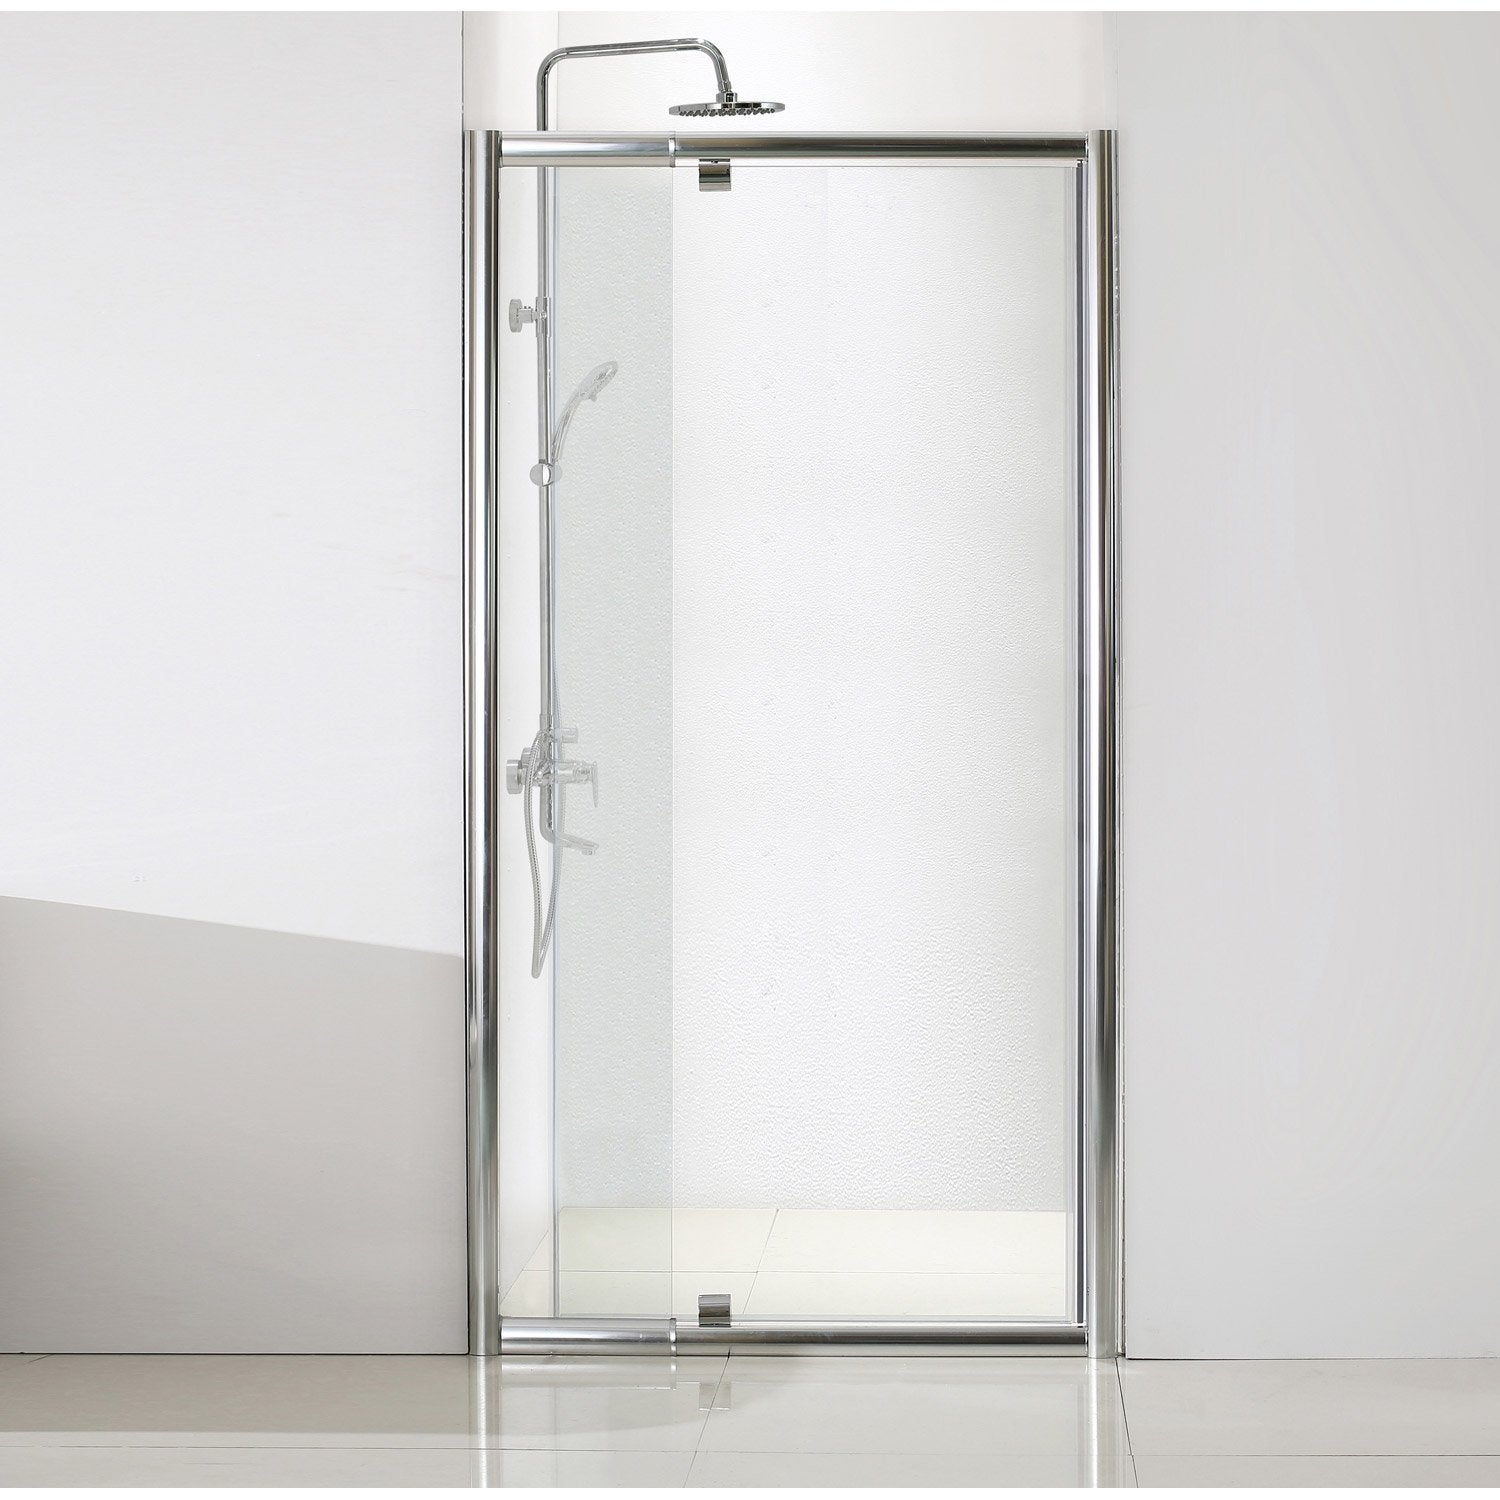 porte de douche pivotante 120 cm transparent quad leroy merlin. Black Bedroom Furniture Sets. Home Design Ideas